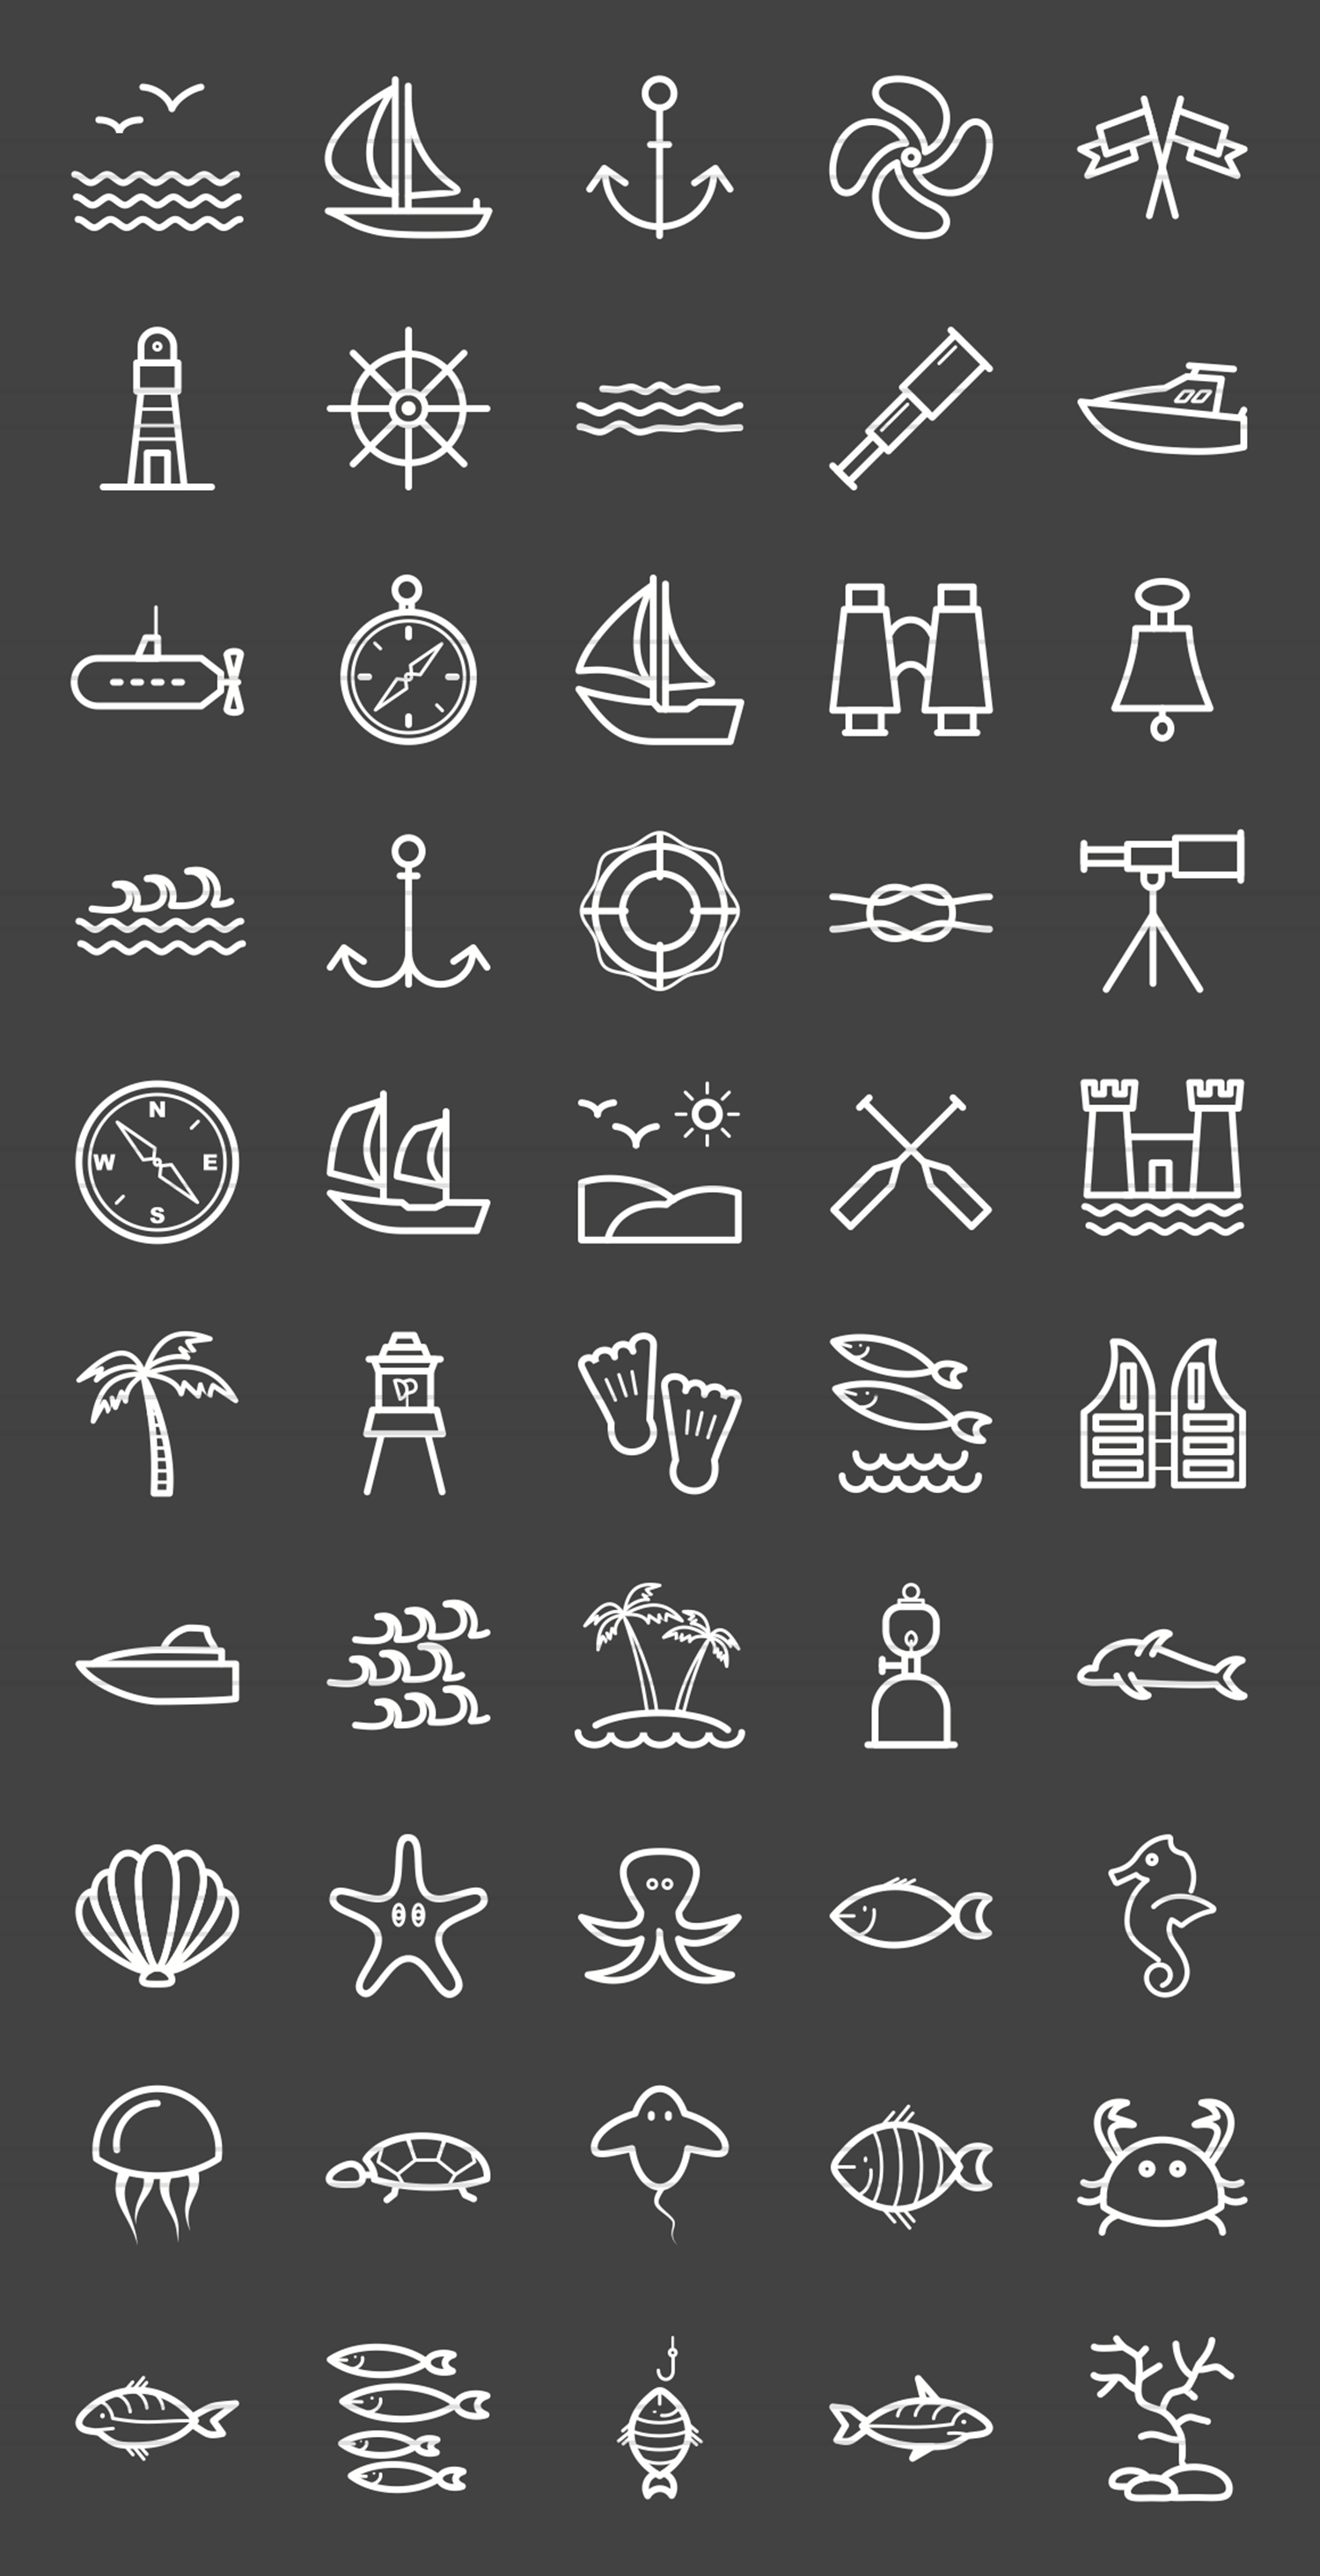 50 Sea Line Inverted Icons example image 2